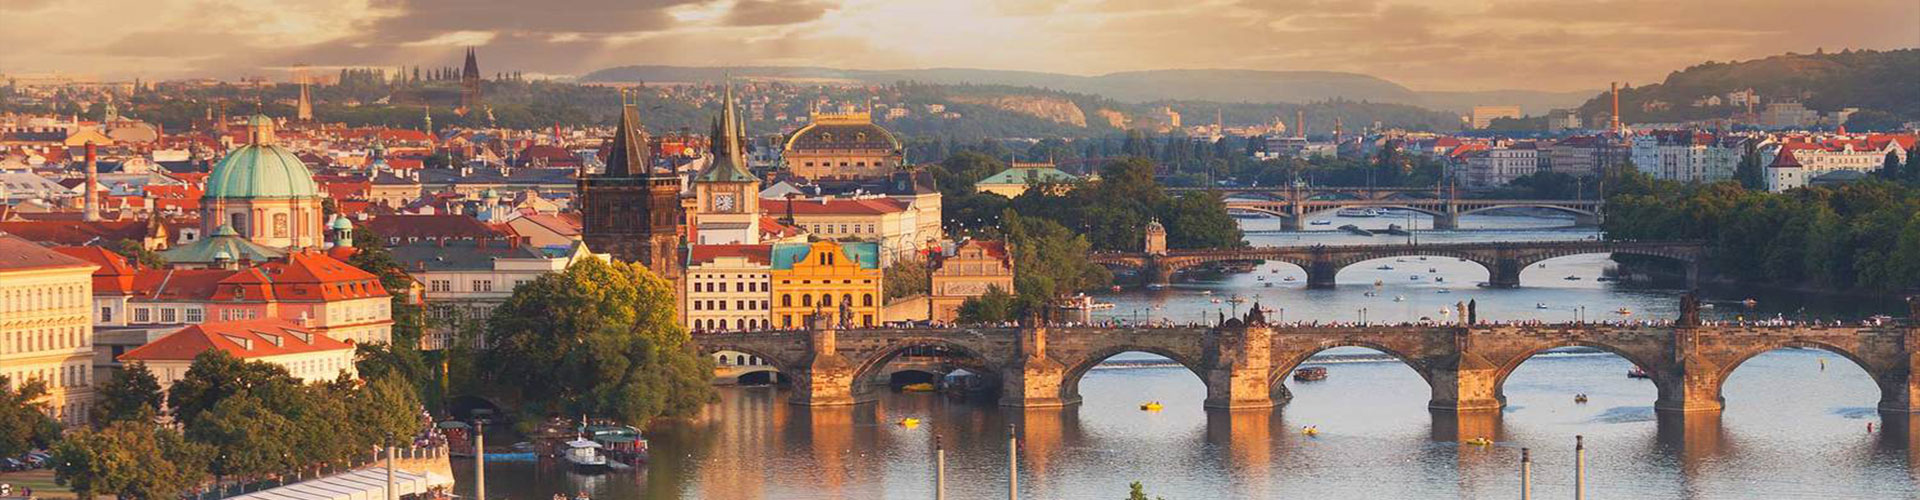 ***SAGA Workshop 1 (Prague, Czech Republic, 30 Sep-1 Oct 2019)***